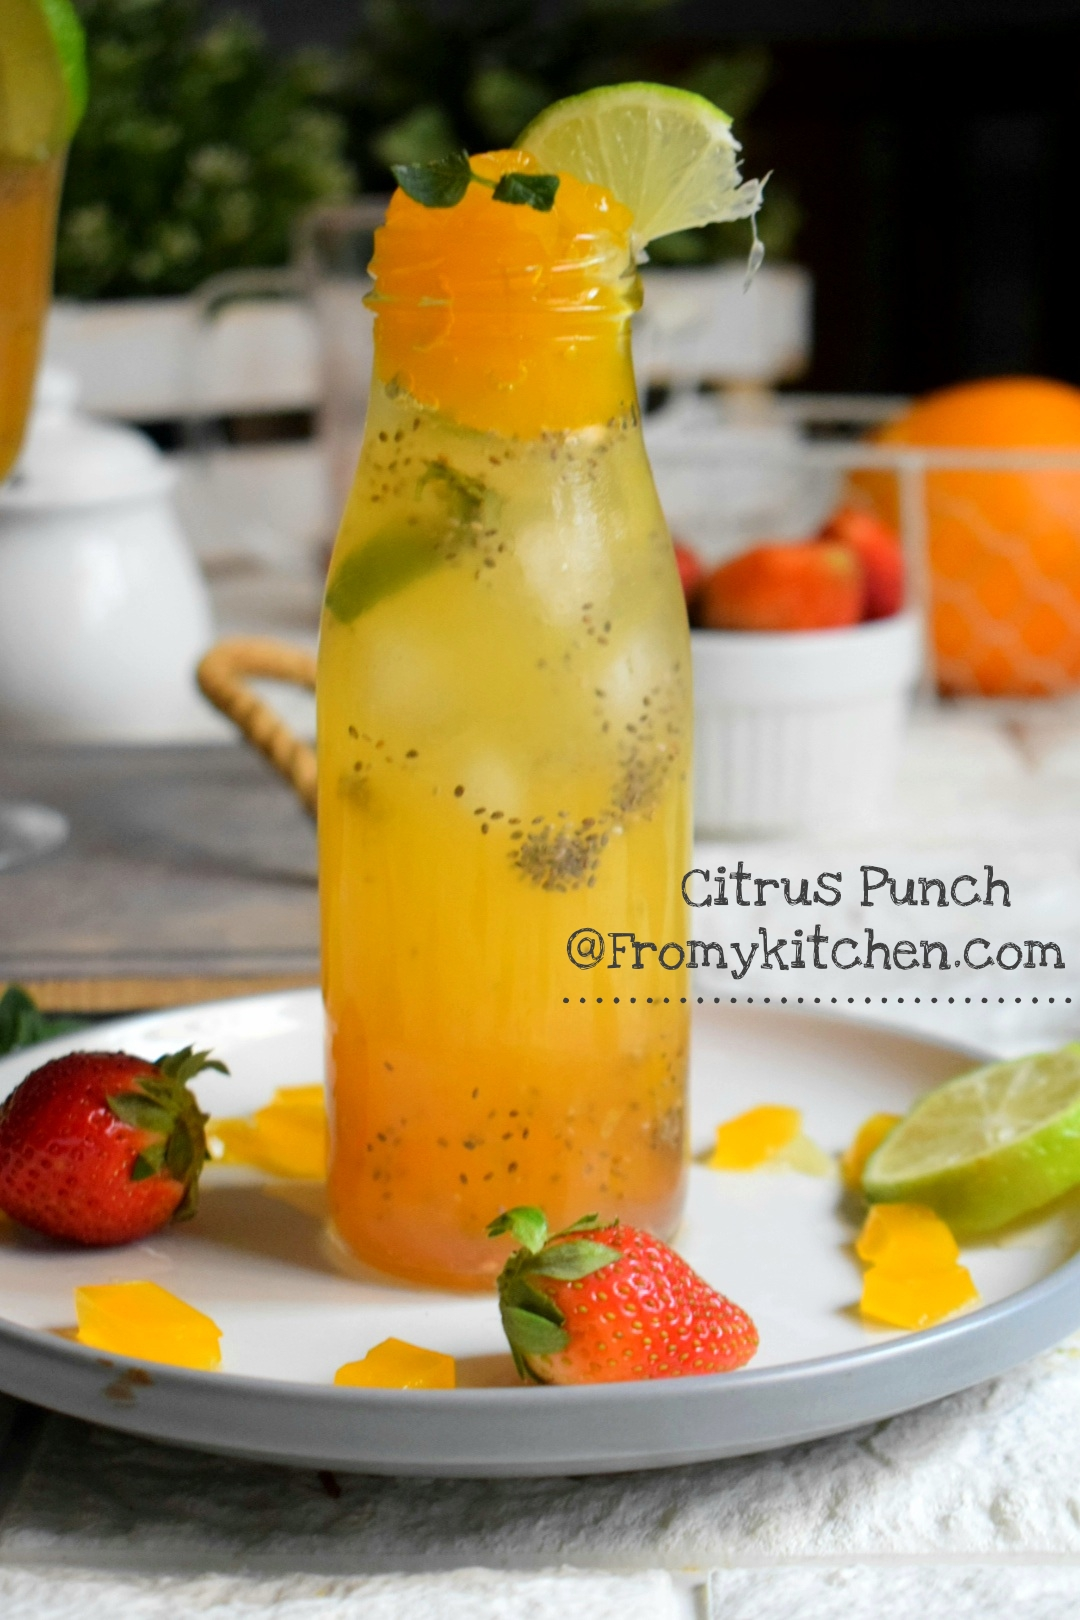 Citrus Punch with Chia & Jelly & Mix of Strawberry Mojito and Citrus Punch